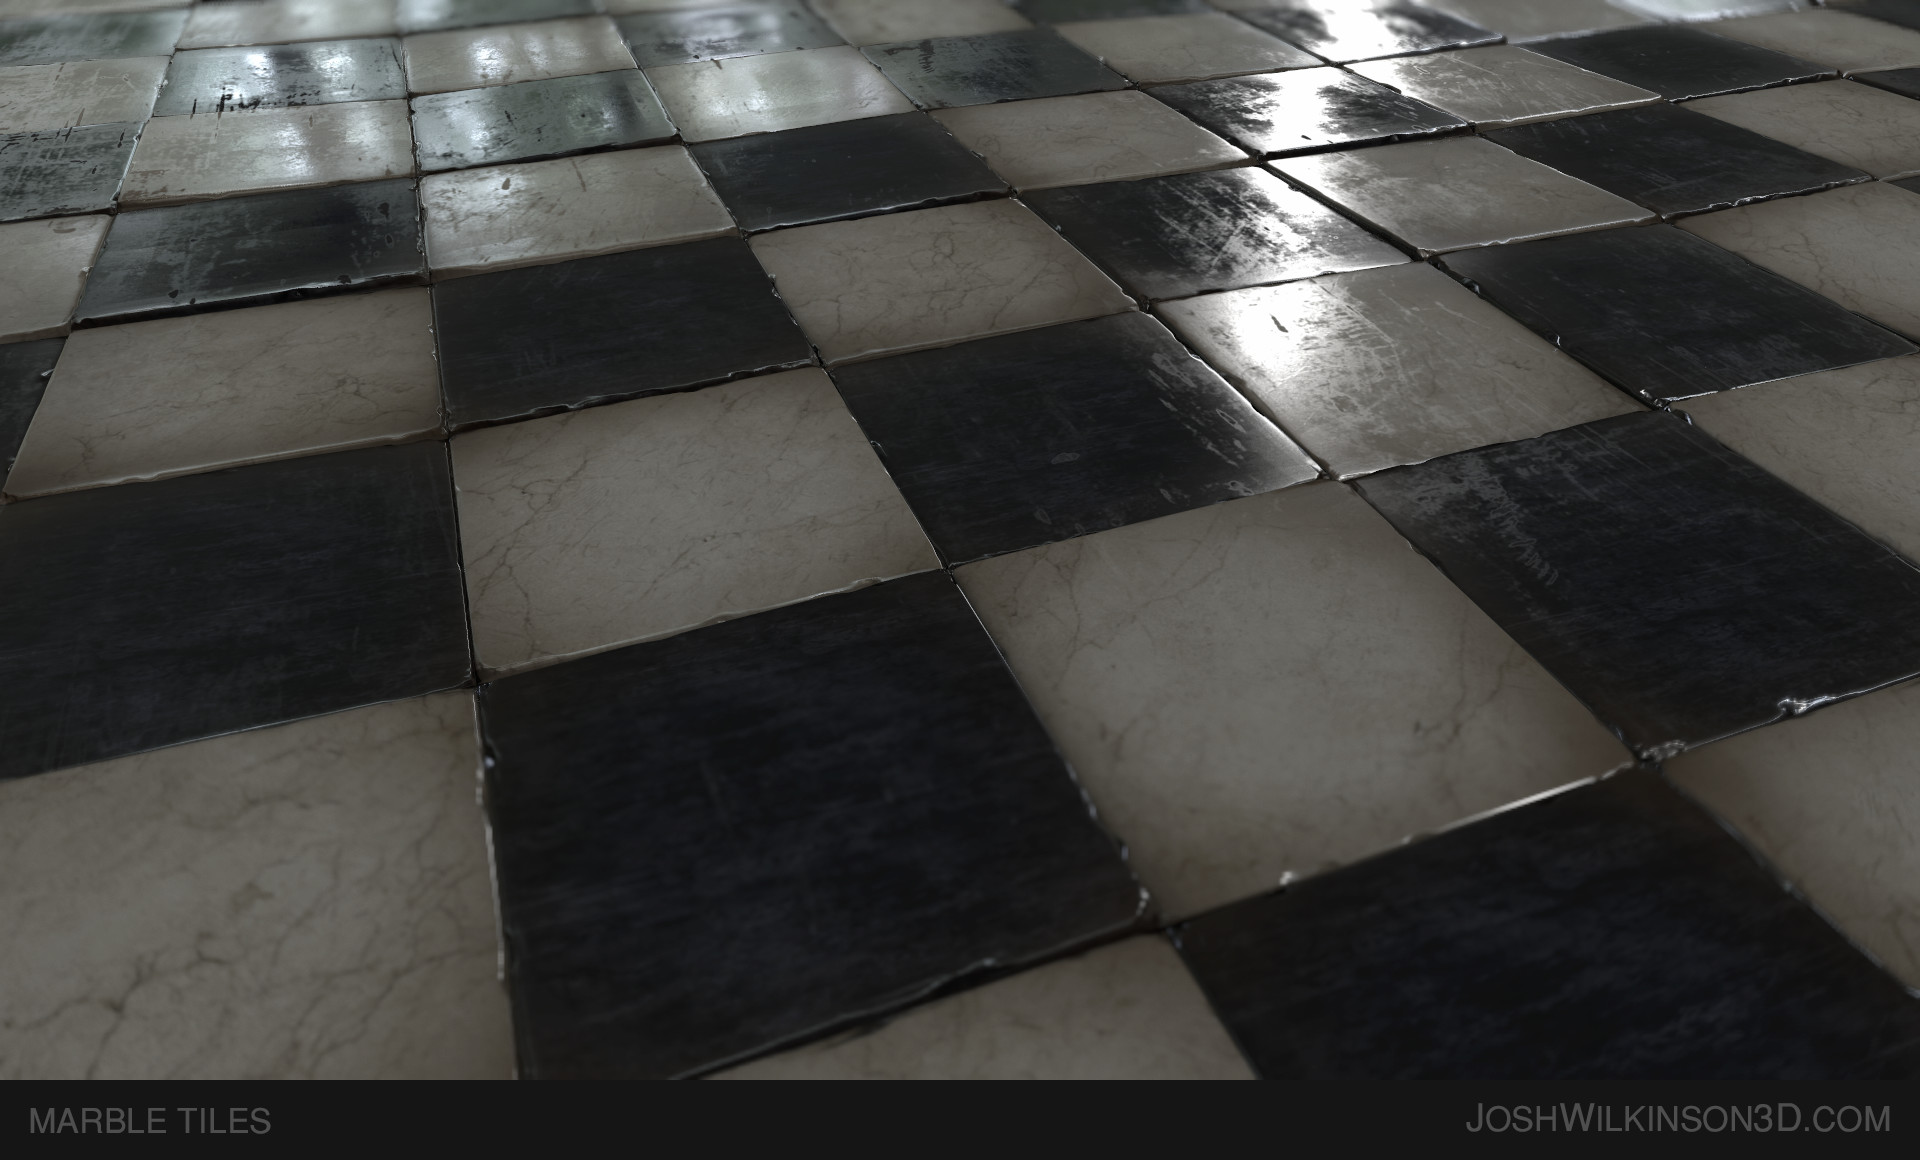 Artstation marble tiles josh wilkinson scroll to see more josh wilkinson dailygadgetfo Choice Image